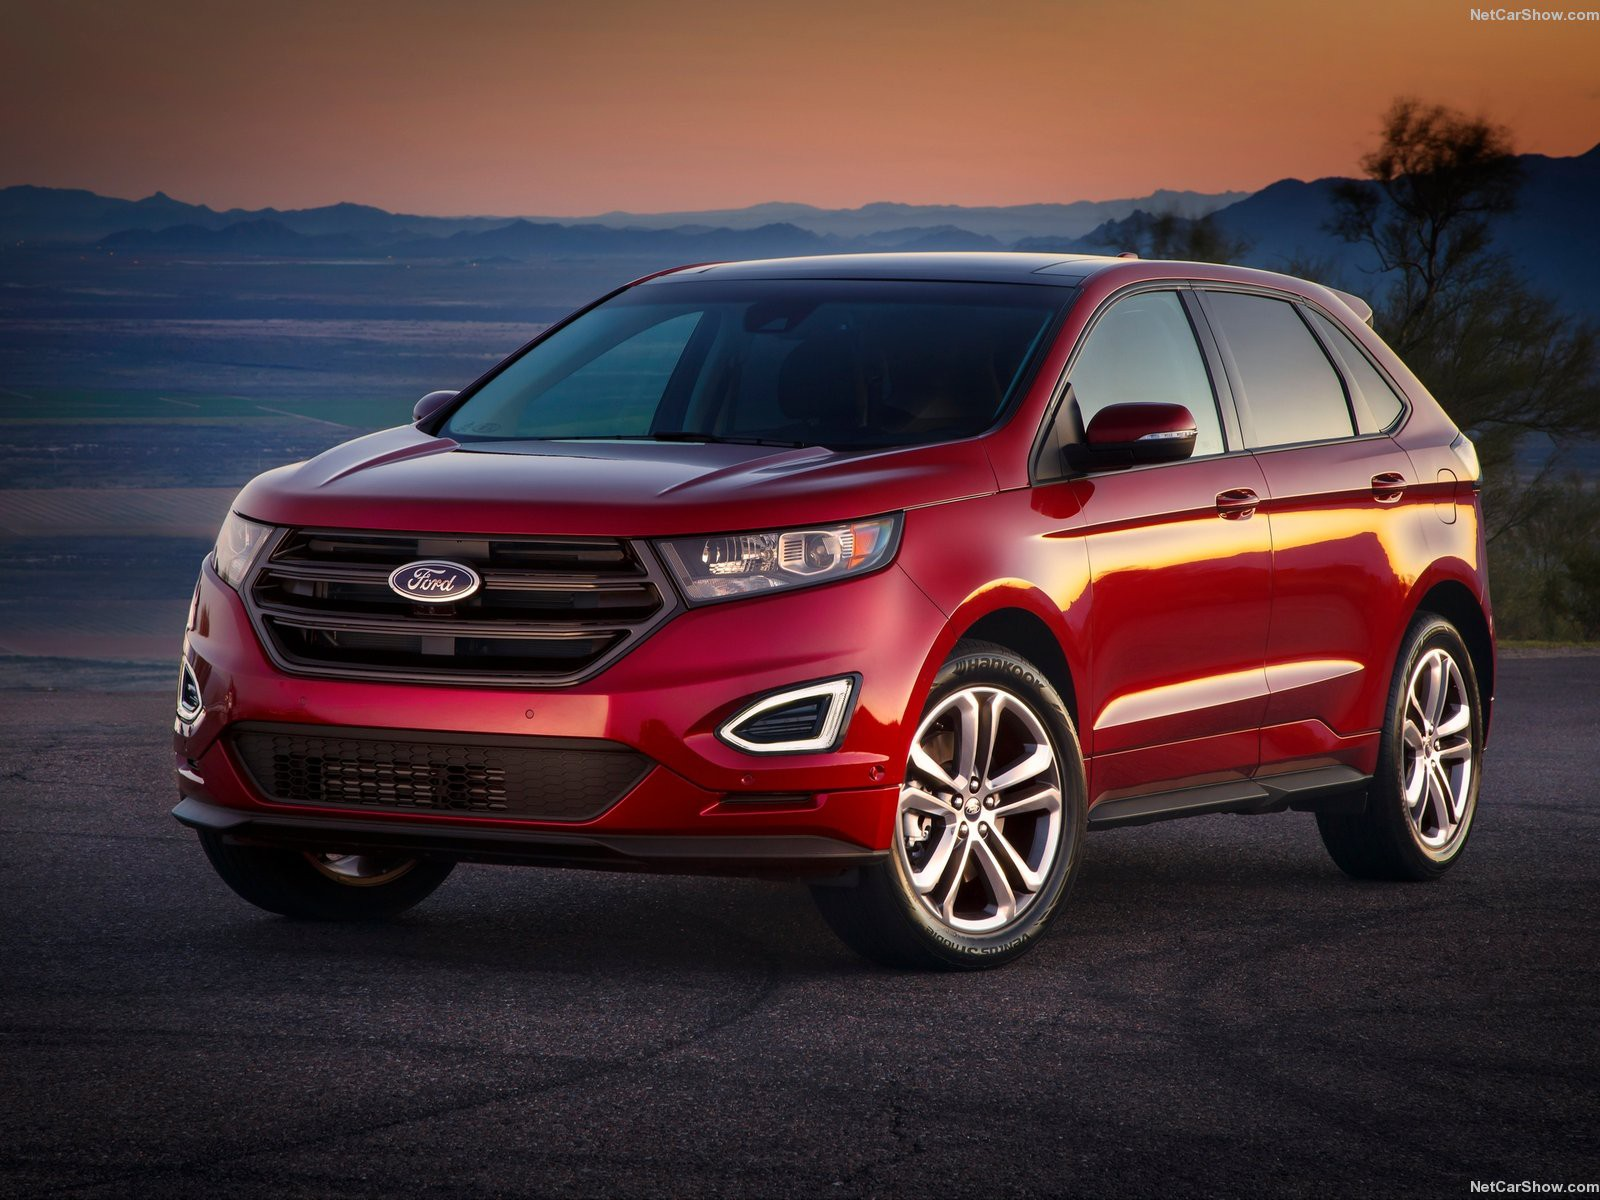 Best mid-size SUV